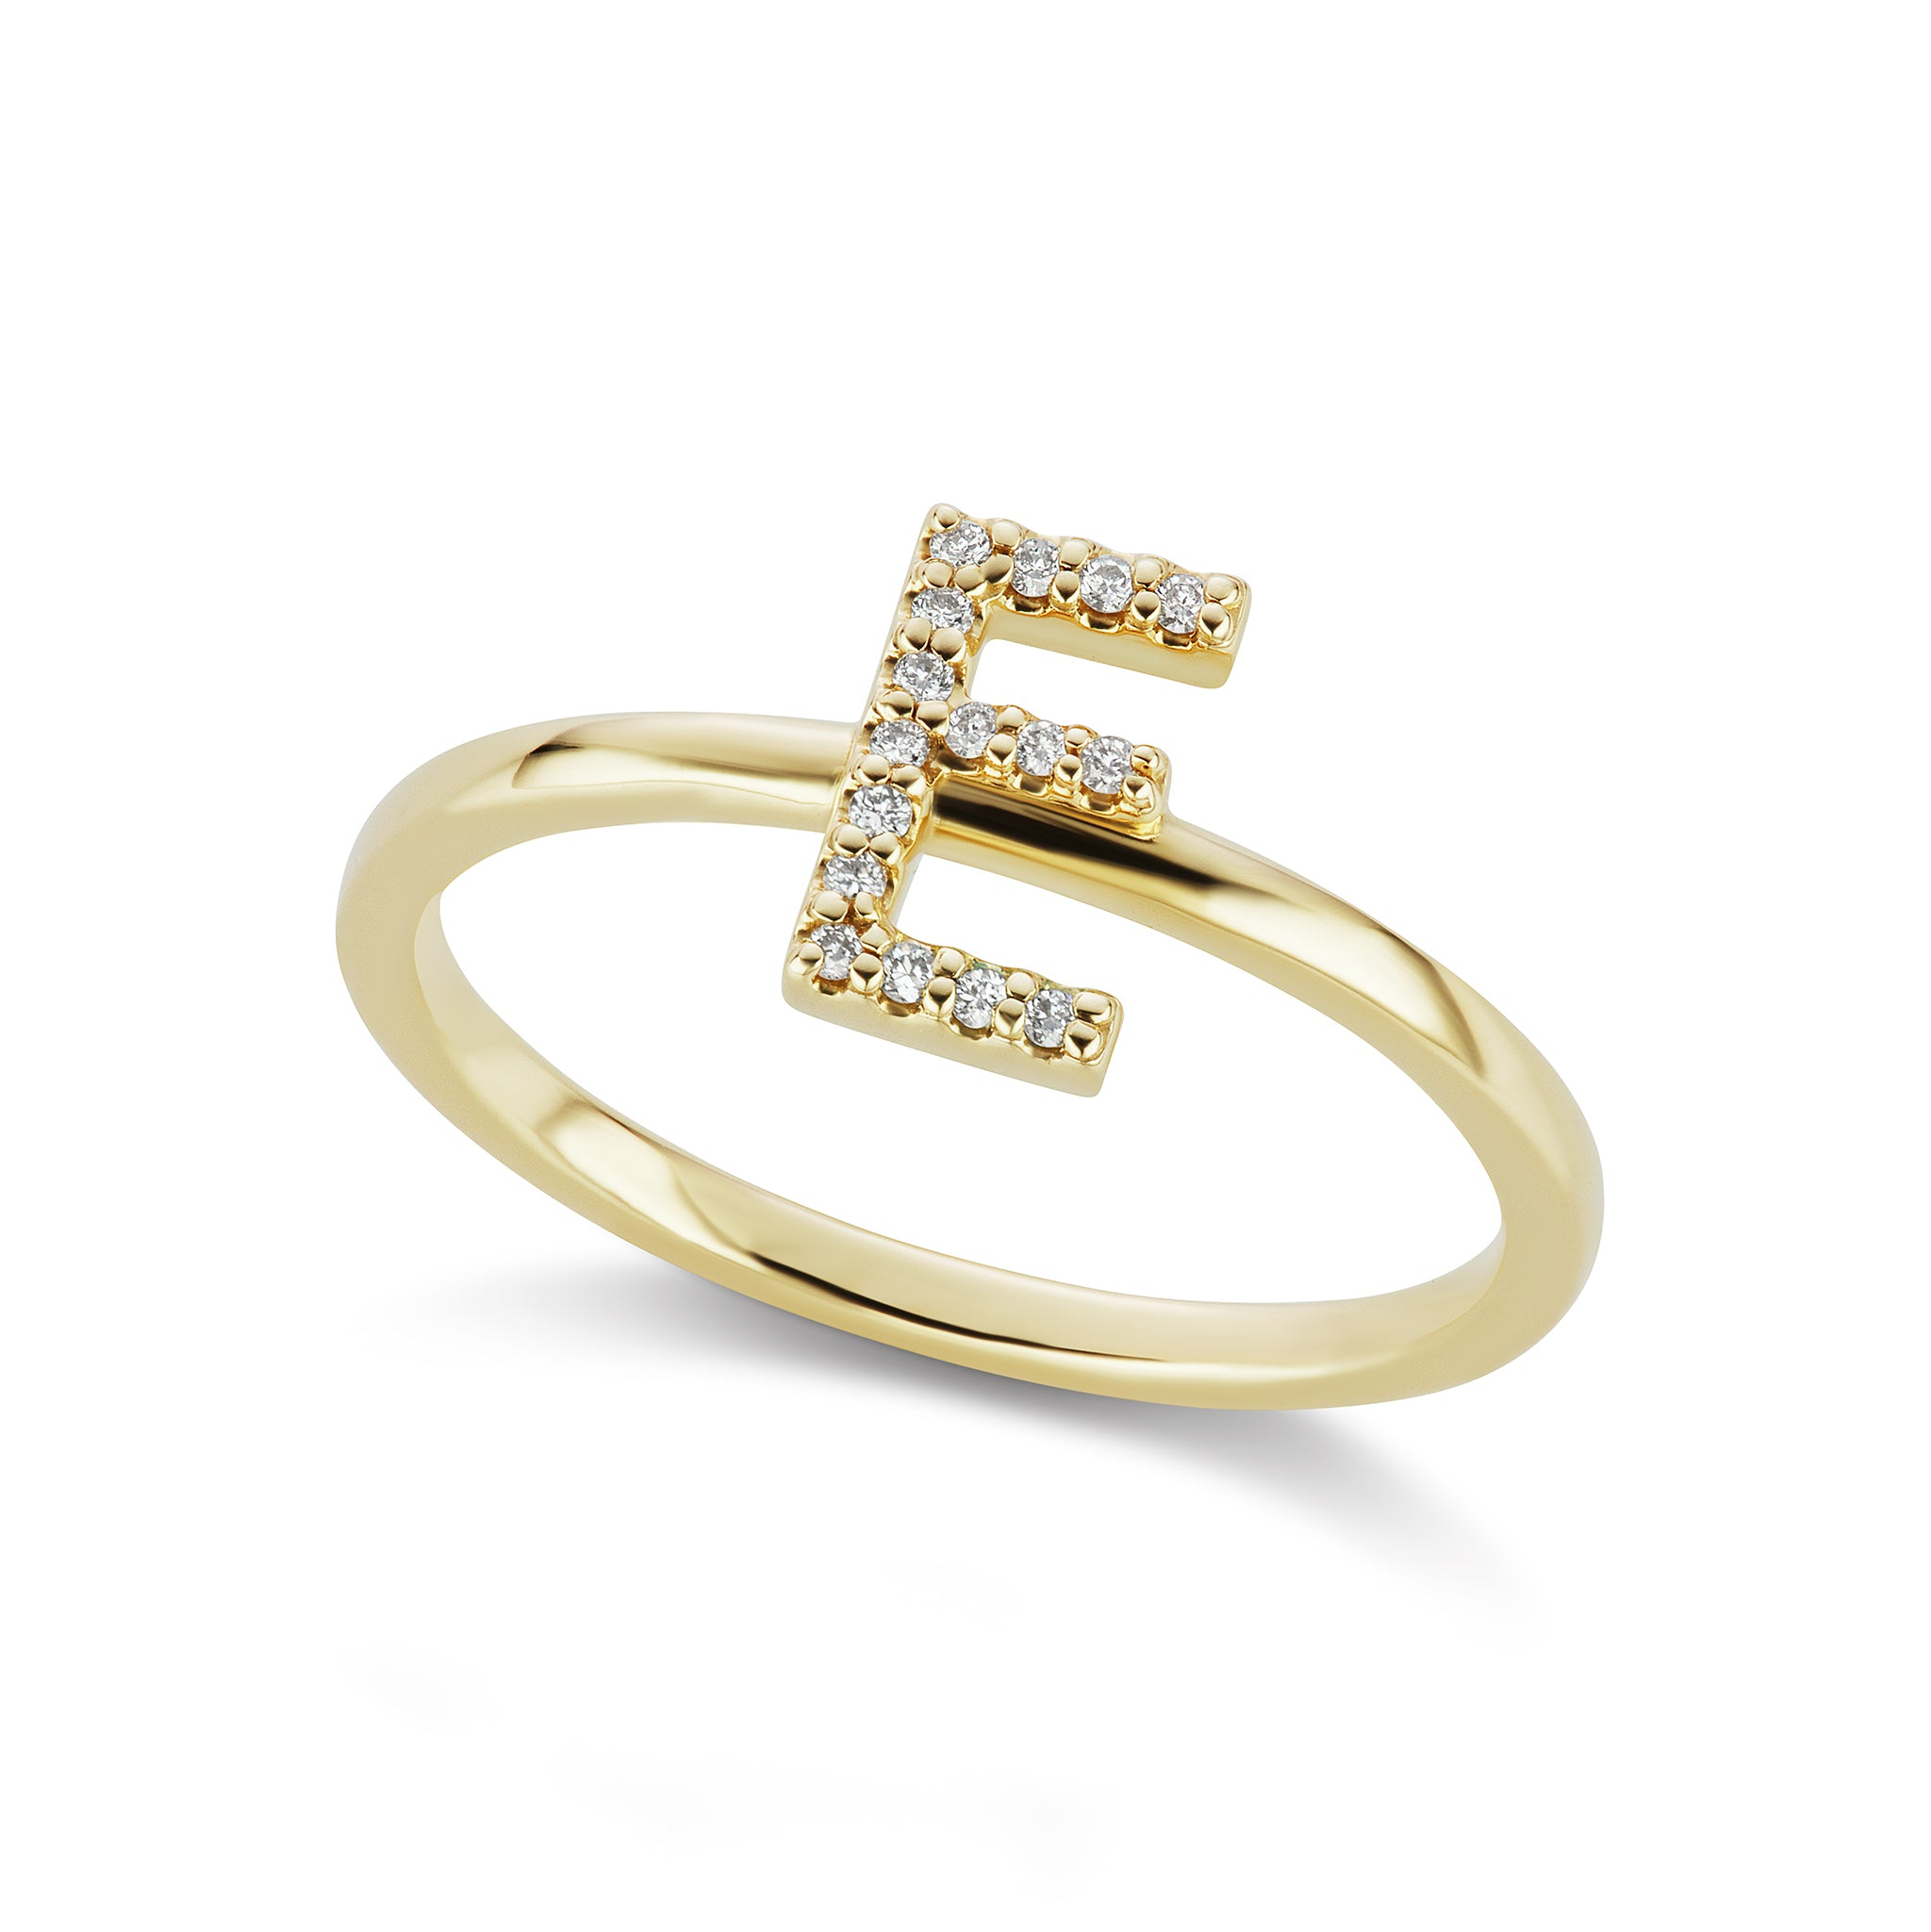 The Gold Diamond Initial Ring